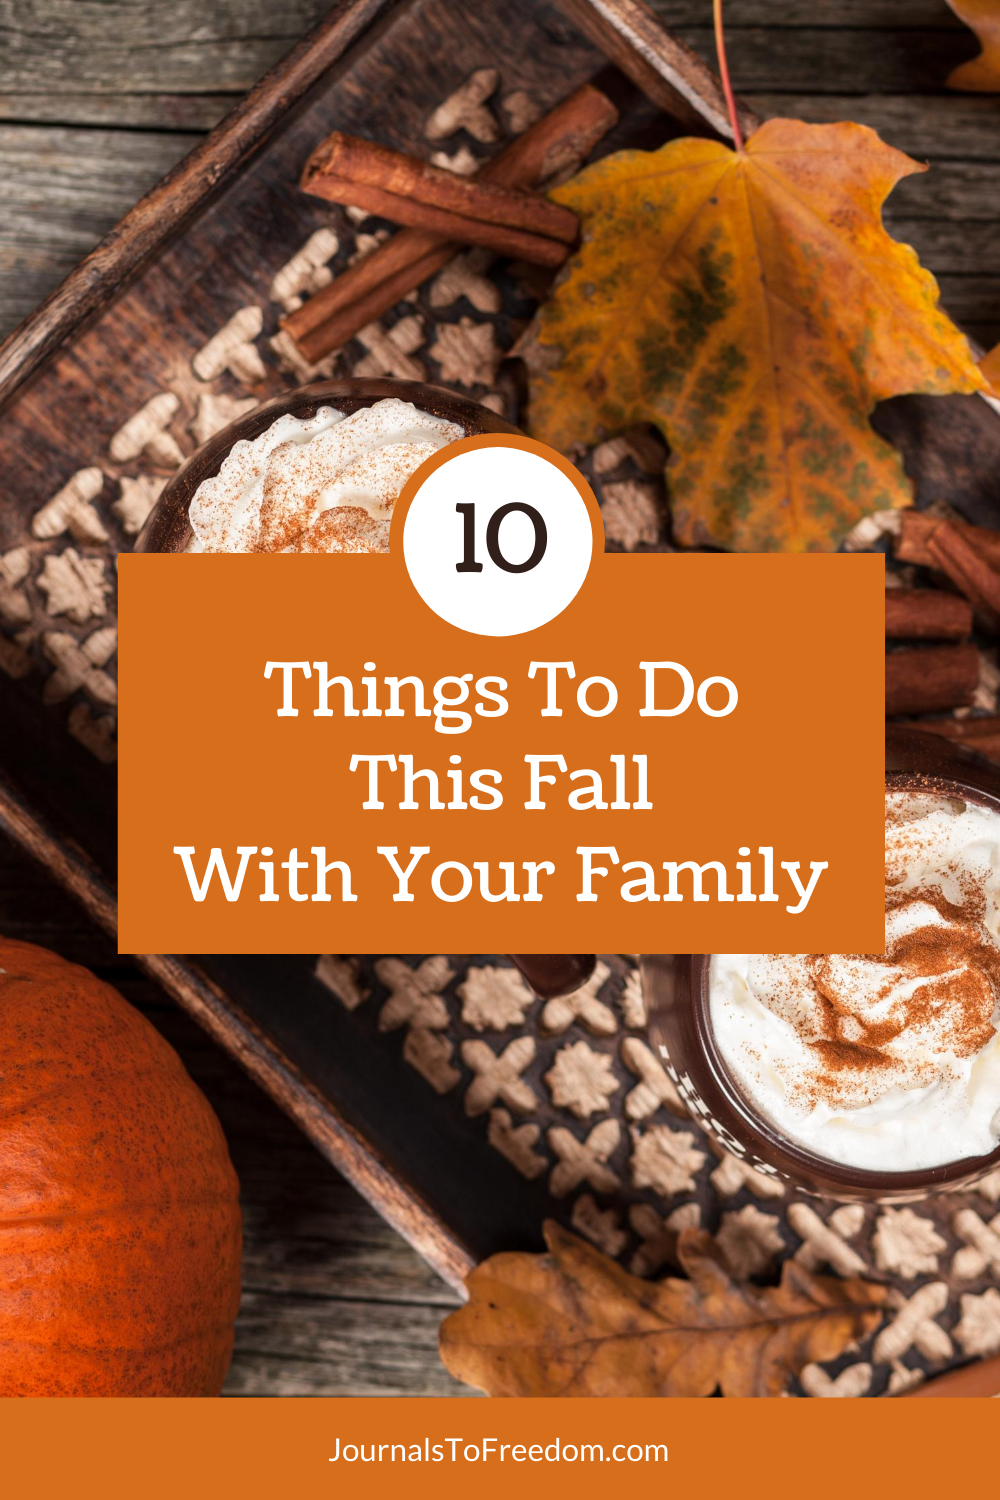 My Top 10 Things To Do In Fall